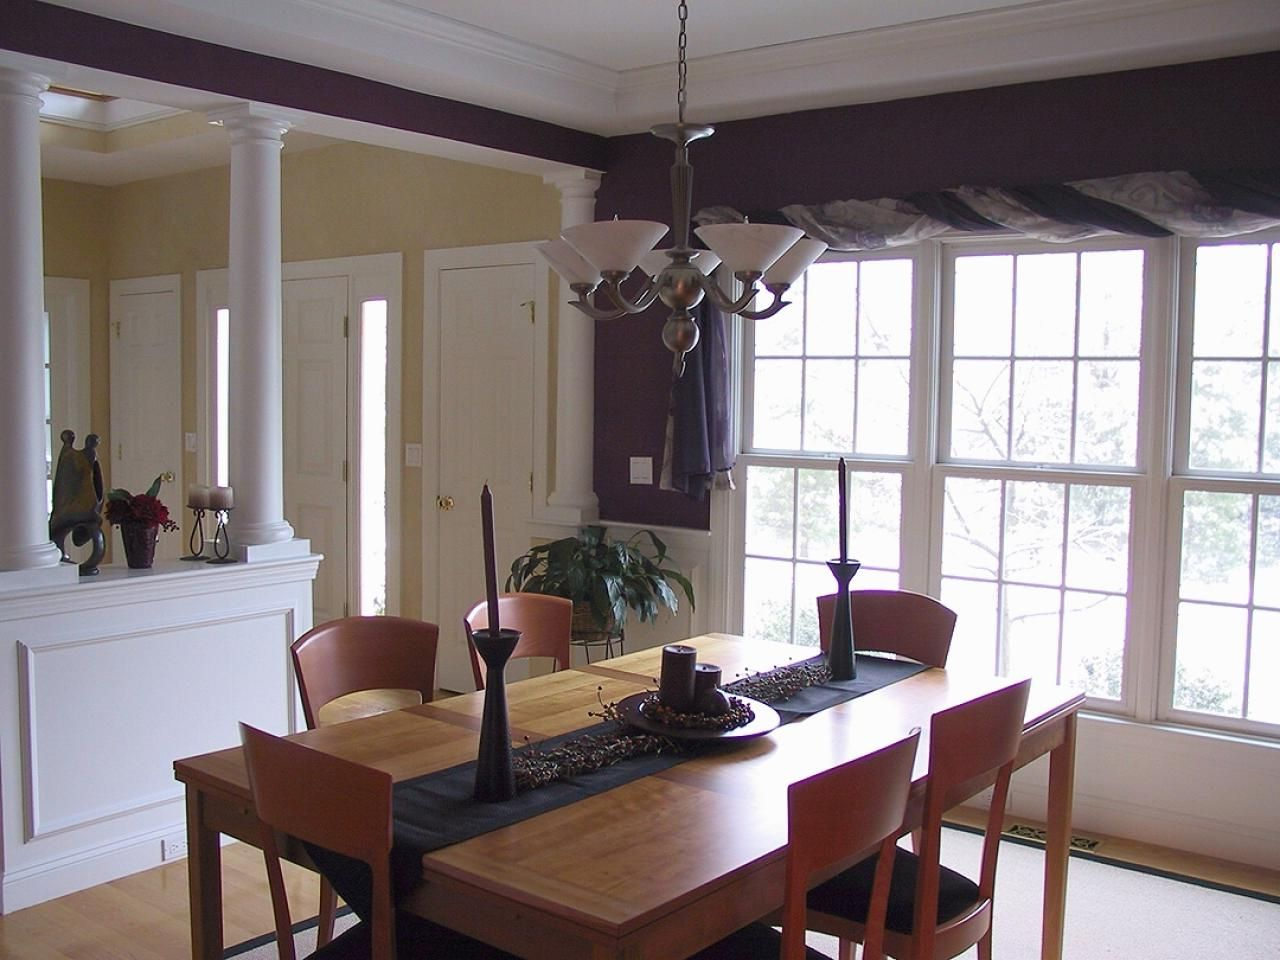 Dining Room Paint Ideas Colors With Images Dining Room Paint Colors Living Room Paint Color Scheme Dining Room Colour Schemes #paint #ideas #for #kitchen #and #living #room